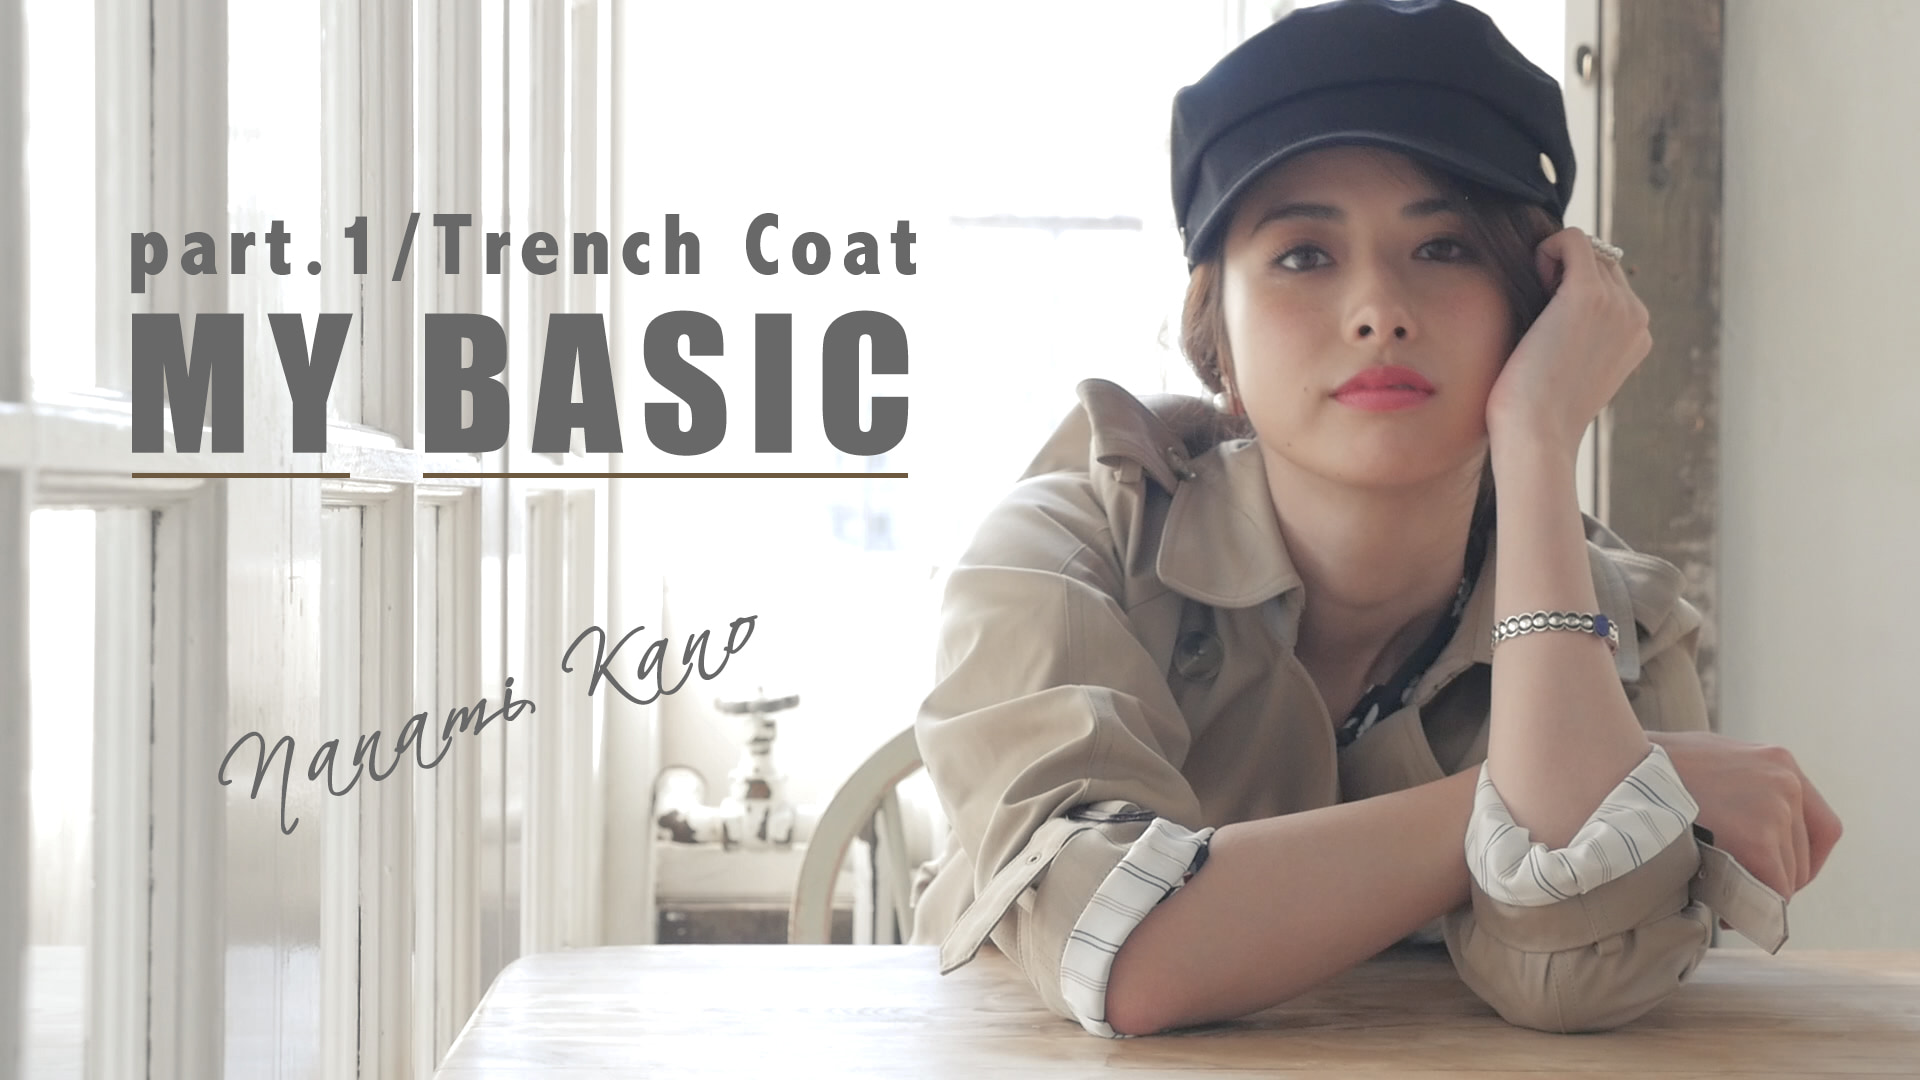 とっておきのMY BASIC 〜part.1 Trench Coat〜